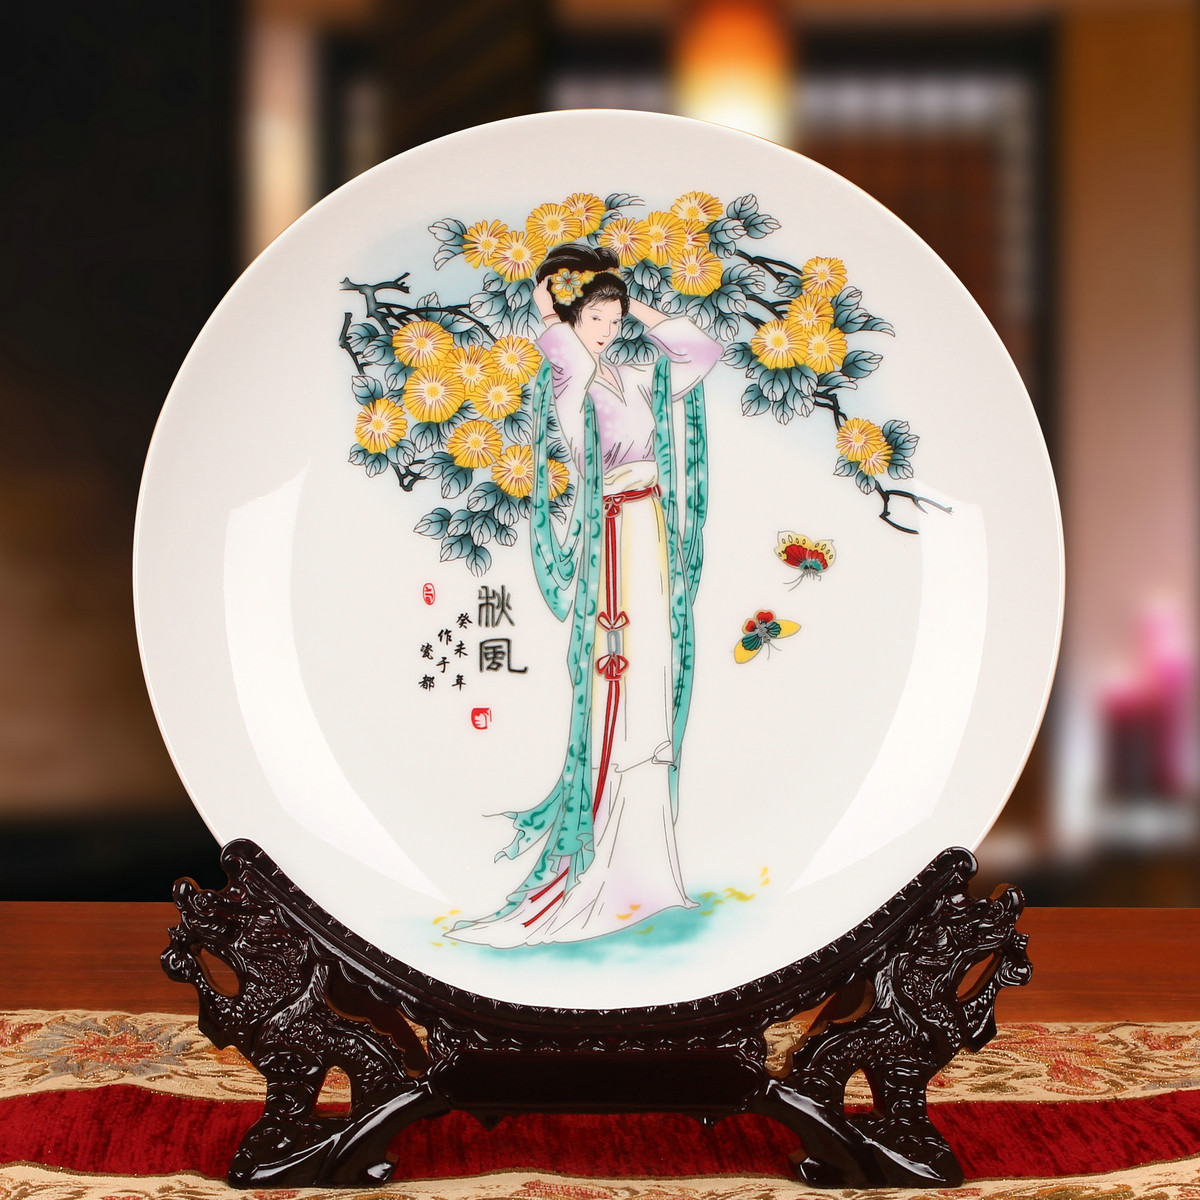 Jingdezhen ceramics ladies figure sitting on a plate hanging plate faceplate chinese classical ornaments home decor furnishings